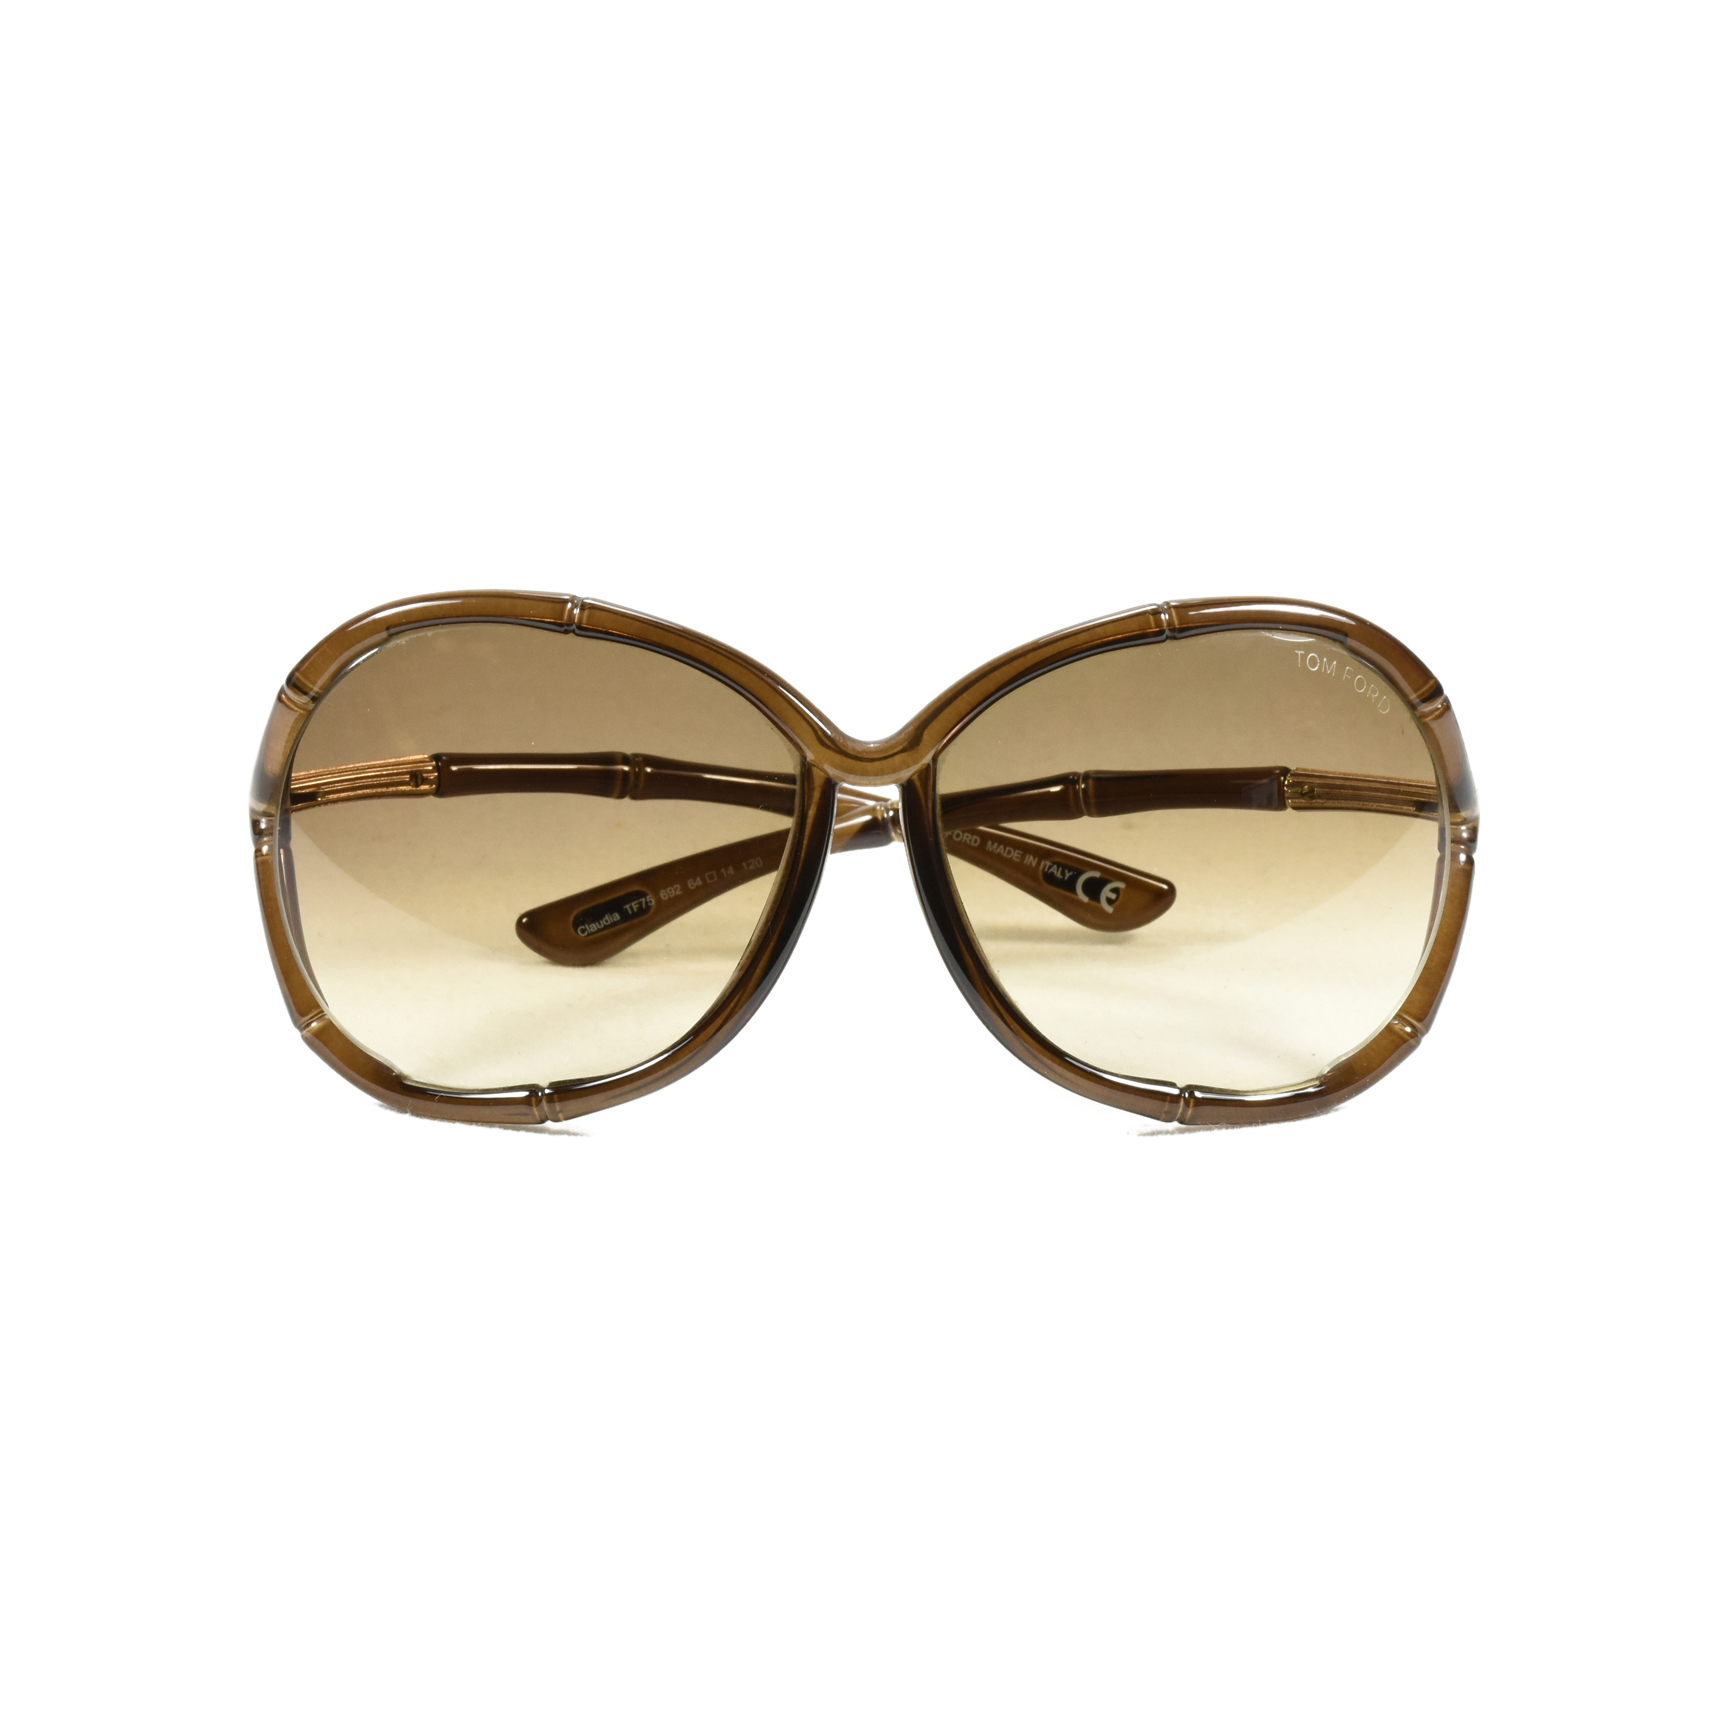 0bdb2321c25 Authentic Second Hand Tom Ford Claudia Sunglasses (PSS-048-00089 ...